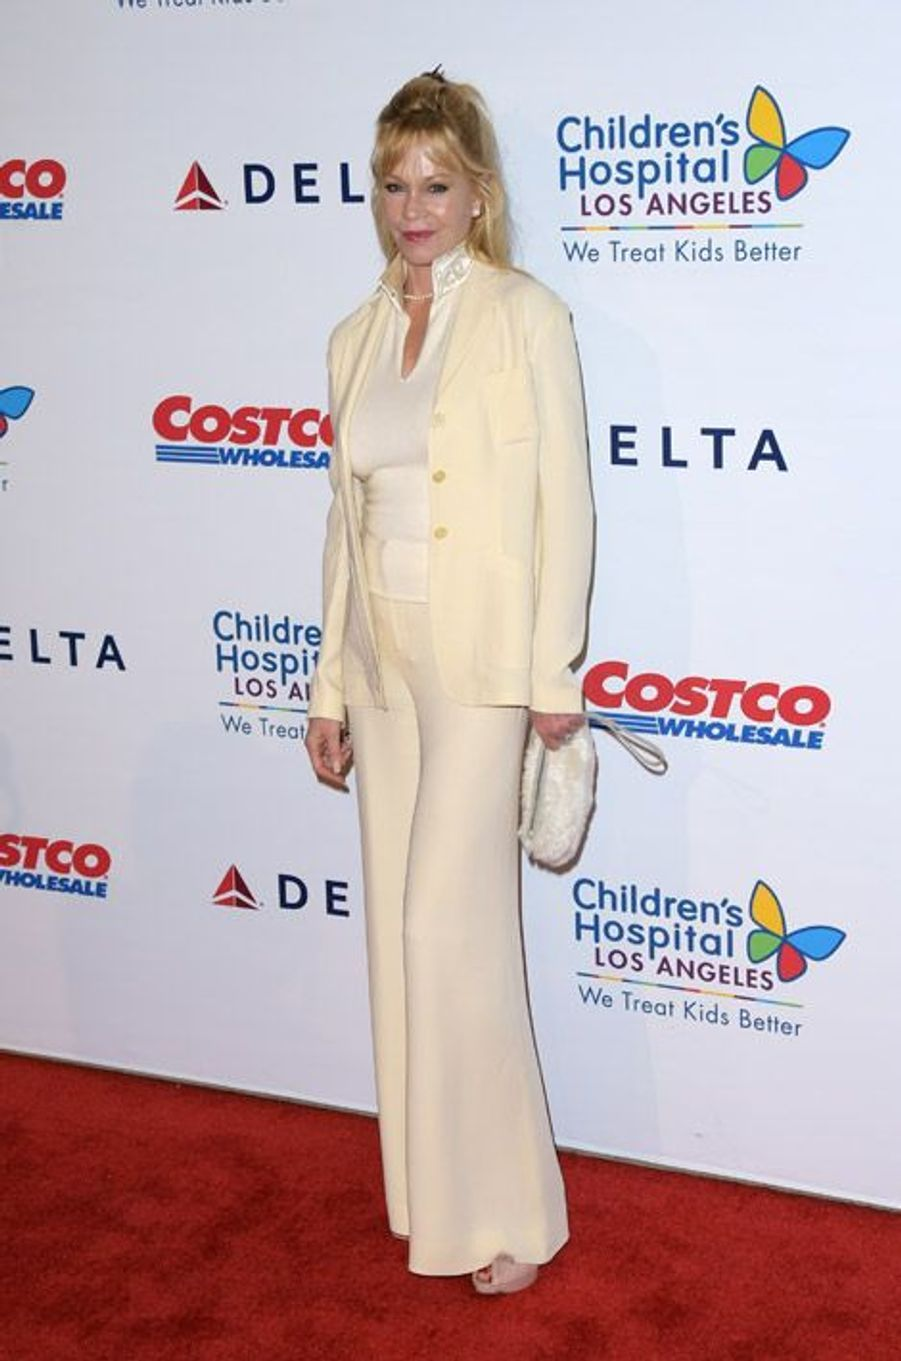 L'actrice Melanie Griffith au gala The Children's Hospital Los Angeles, le 11 octobre 2014